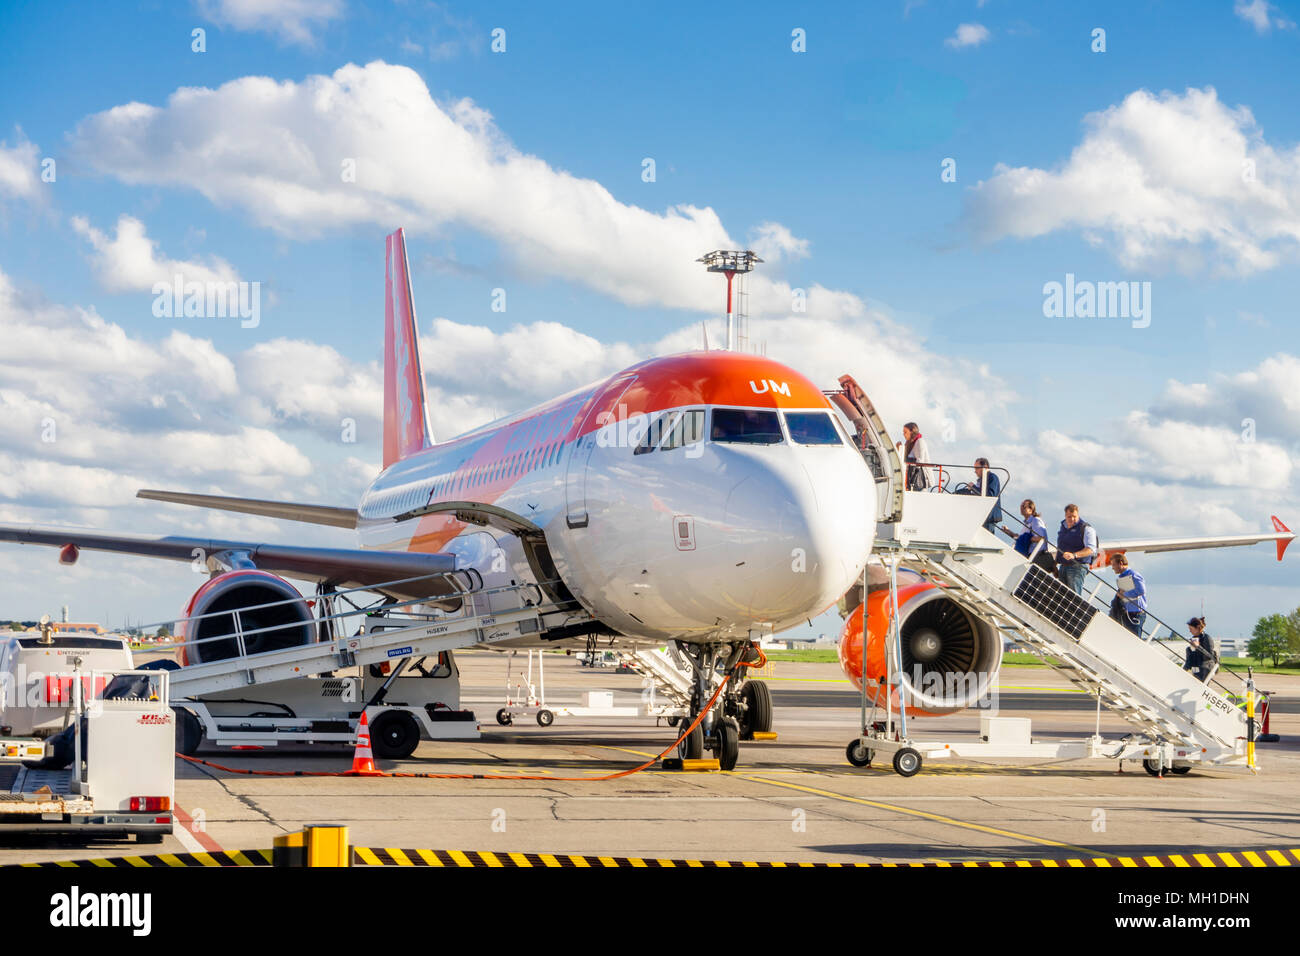 Passengers boarding an Easyjet Airbus A320-200 aircraft/ airplane by stairs at Schoenefeld Airport (SXF) in April 2018 - Stock Image